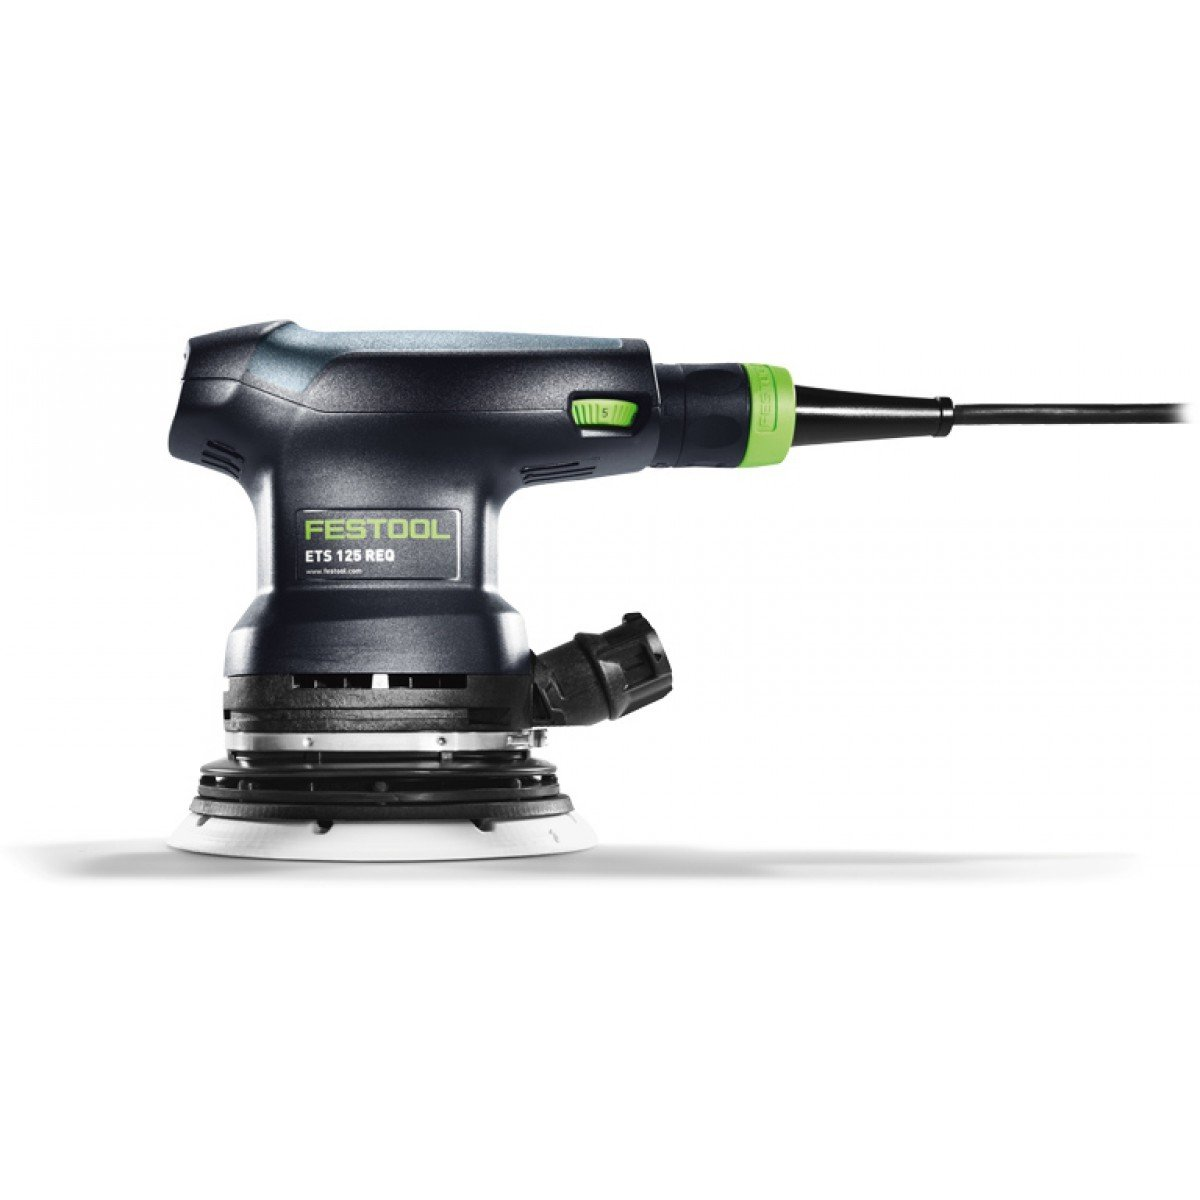 Festool ETS 125 featured image 1